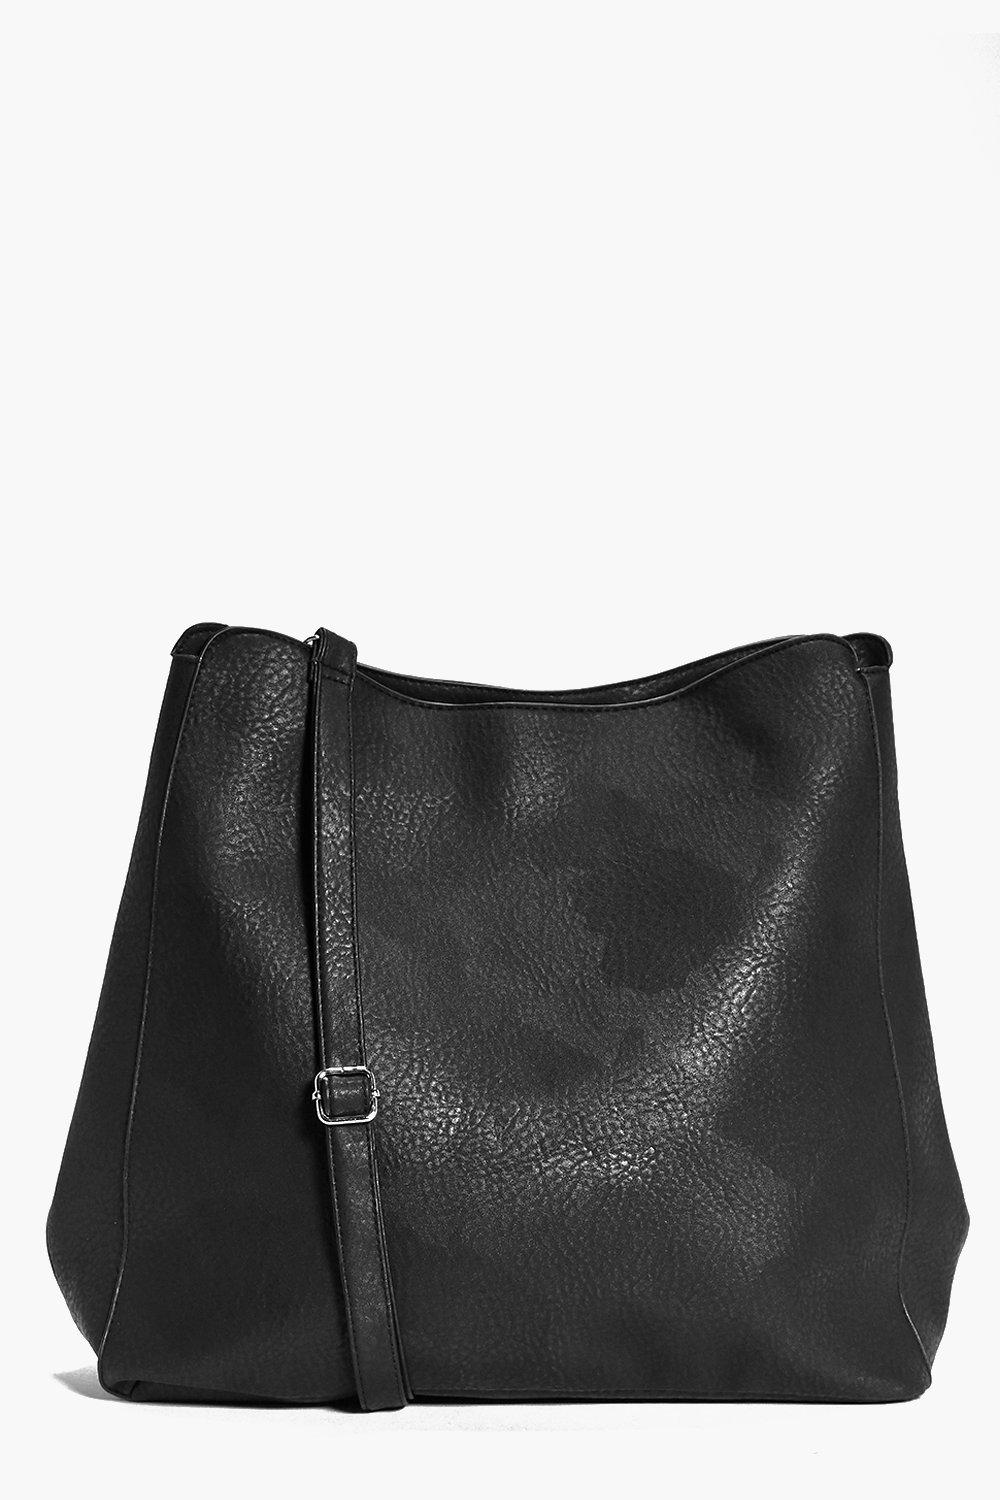 Nicole Oversize Bucket Day Bag